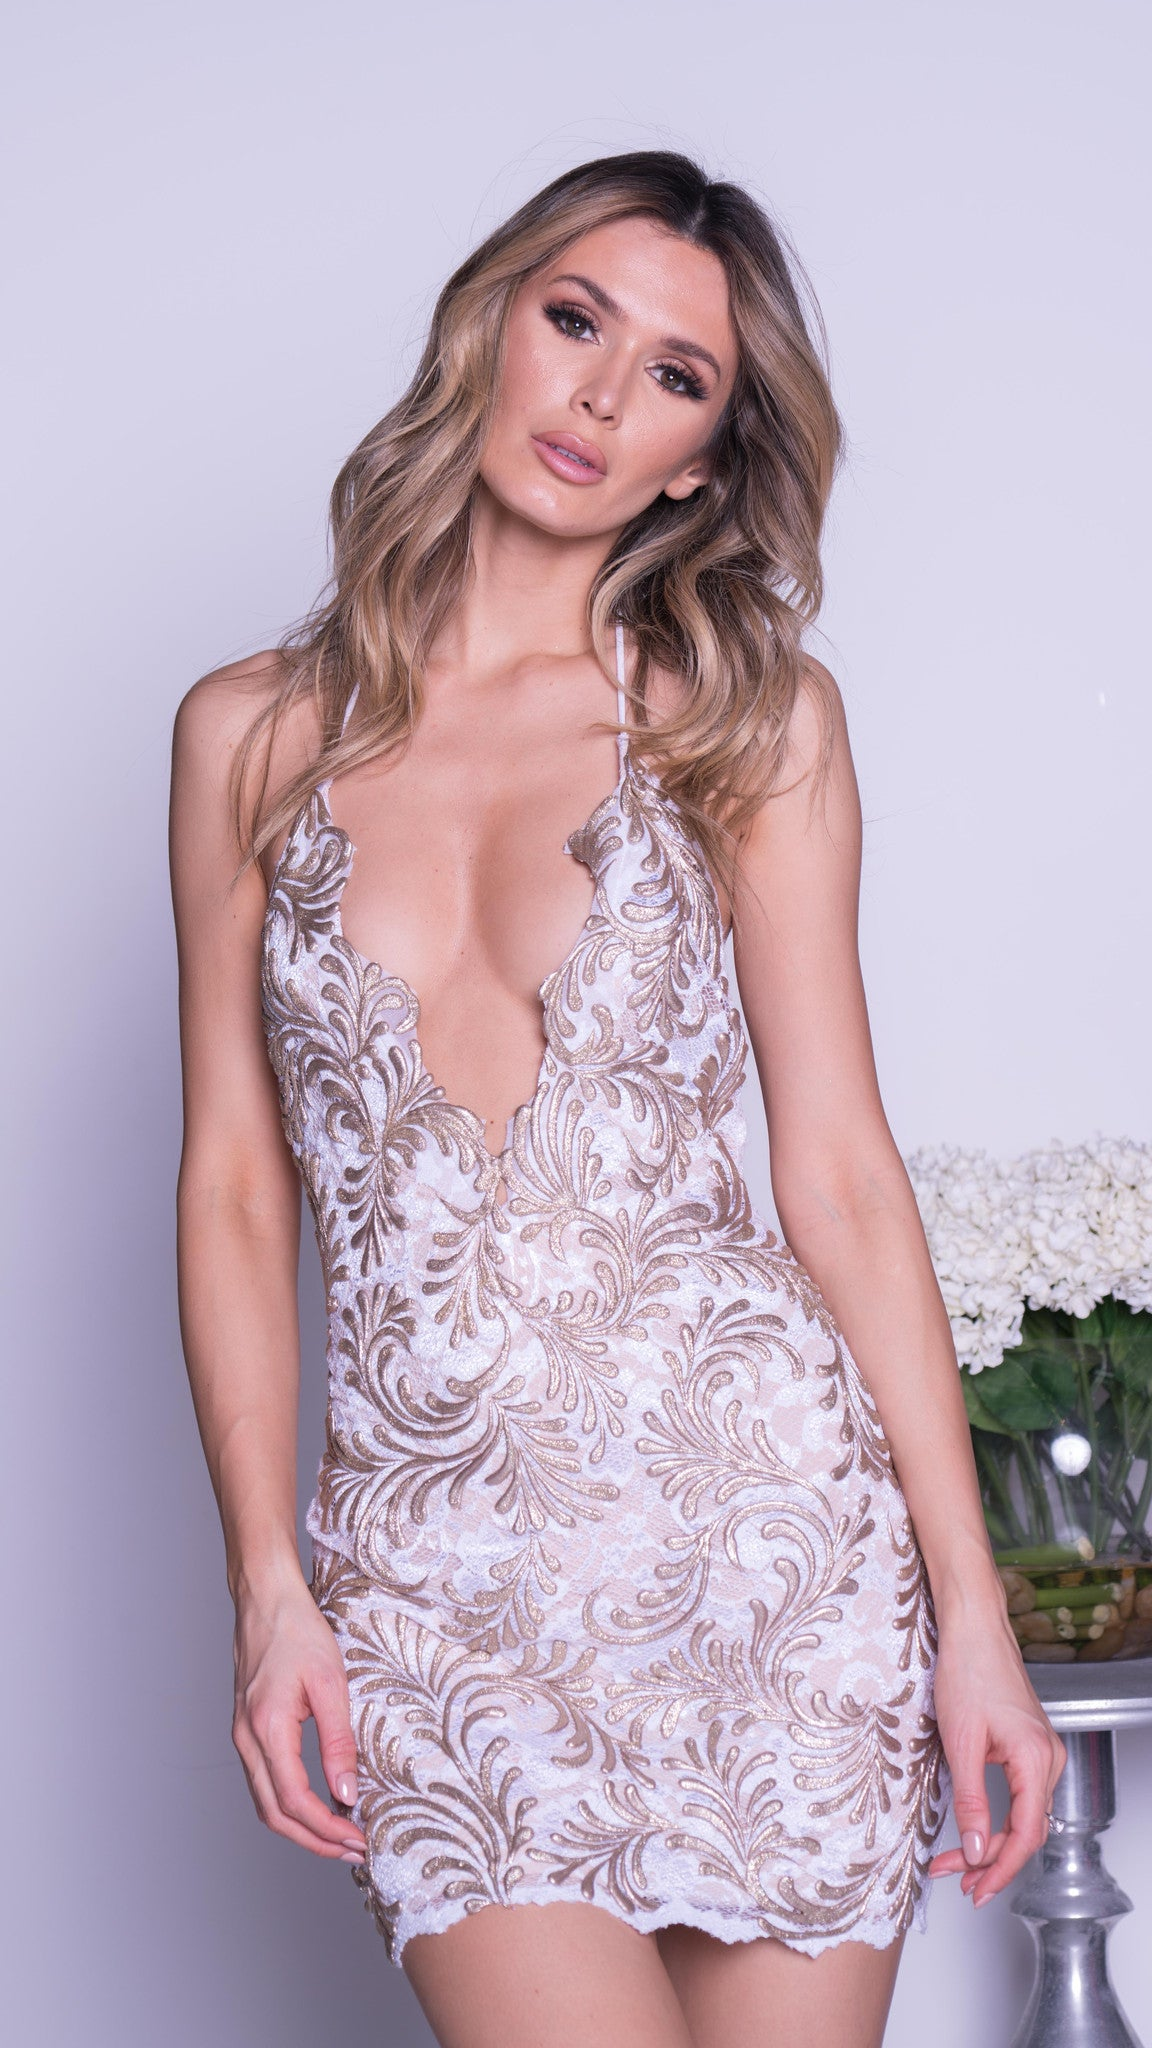 MORANE LACE DRESS IN WHITE WITH GOLD